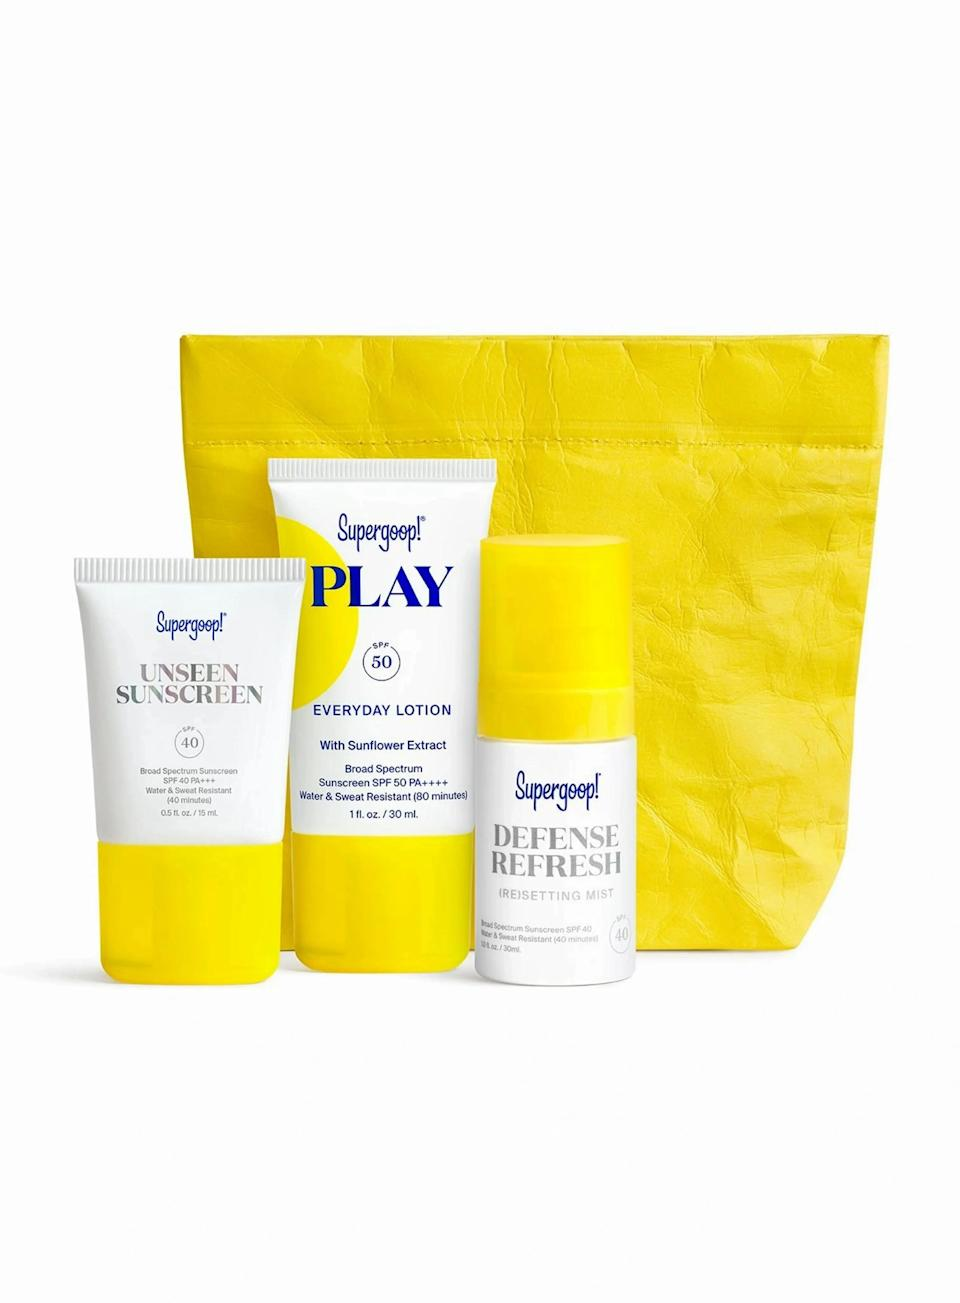 """<h2>Supergoop! SPF From Head To Toe Kit</h2><br>Going somewhere sunny? Don't ruin your tropical beach vacay by neglecting your skin and instead, pack this one-and-done bestselling Supergoop! SPF kit. <br><br><em>Shop</em> <strong><em><a href=""""http://supergoop.com"""" rel=""""nofollow noopener"""" target=""""_blank"""" data-ylk=""""slk:Supergoop!"""" class=""""link rapid-noclick-resp"""">Supergoop!</a></em></strong><br><br><strong>Supergoop!</strong> SPF from Head-to-Toe Kit, $, available at <a href=""""https://go.skimresources.com/?id=30283X879131&url=https%3A%2F%2Fsupergoop.com%2Fproducts%2Fspf-from-head-to-toe-kit"""" rel=""""nofollow noopener"""" target=""""_blank"""" data-ylk=""""slk:Supergoop!"""" class=""""link rapid-noclick-resp"""">Supergoop!</a>"""